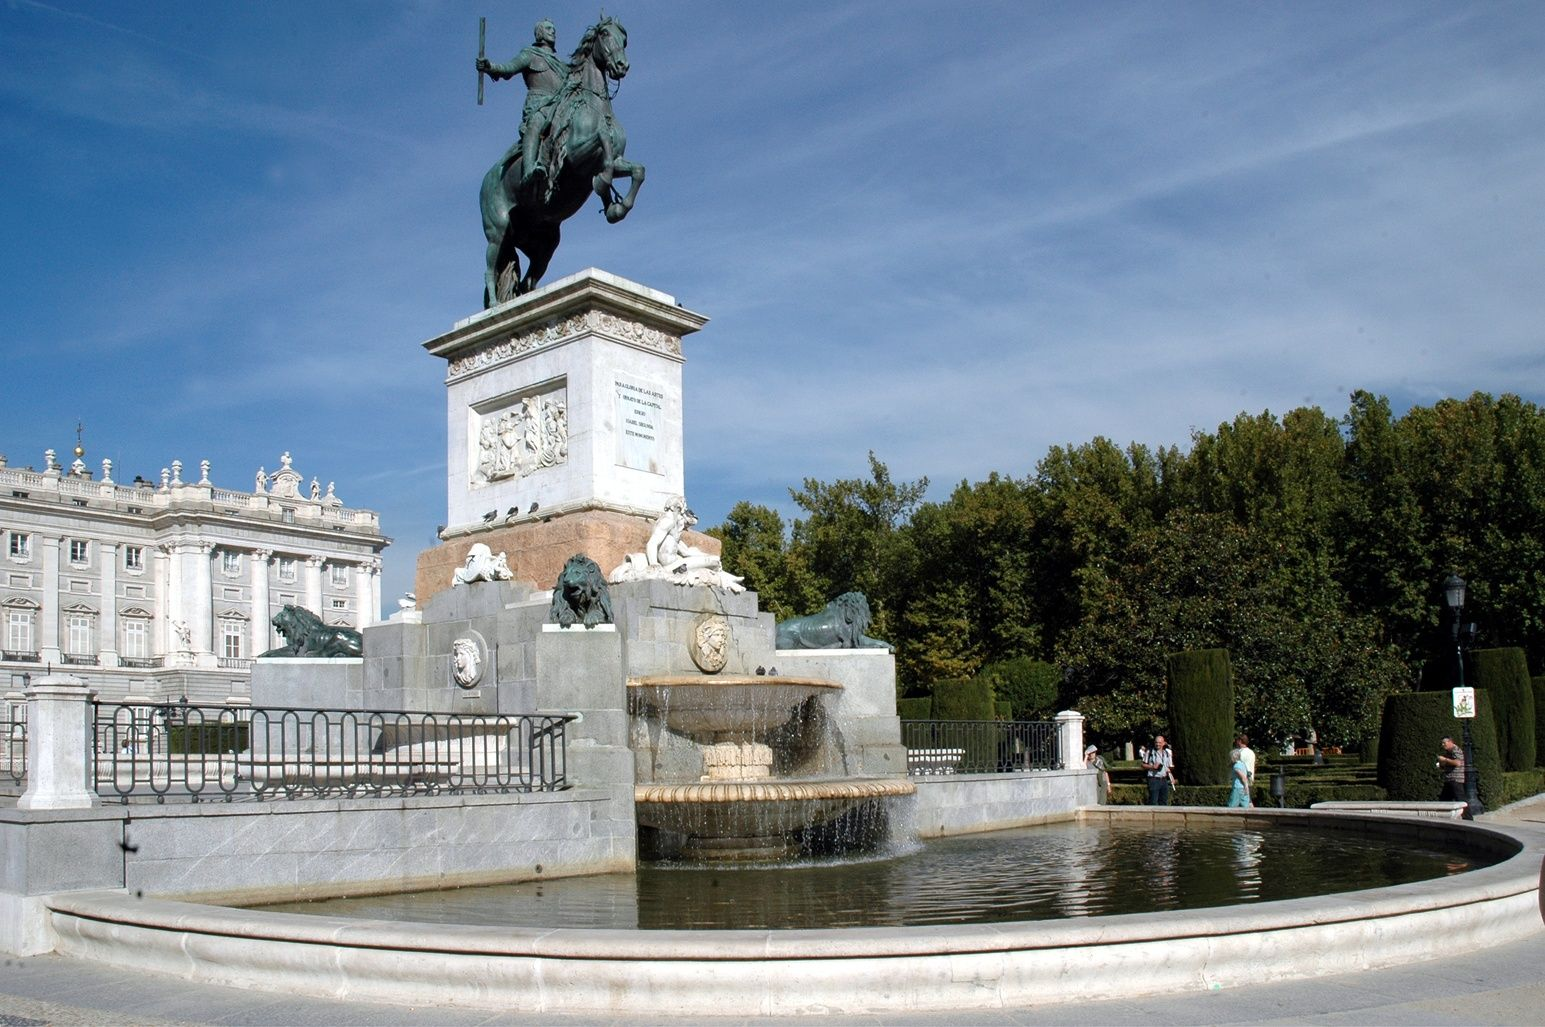 SIGHTS. Plaza De Oriente. With its perfectly-designed gardens, the Plaza de Oriente has become a museum of sculptures due to the twenty figures of different Spanish monarchs that surround the area.